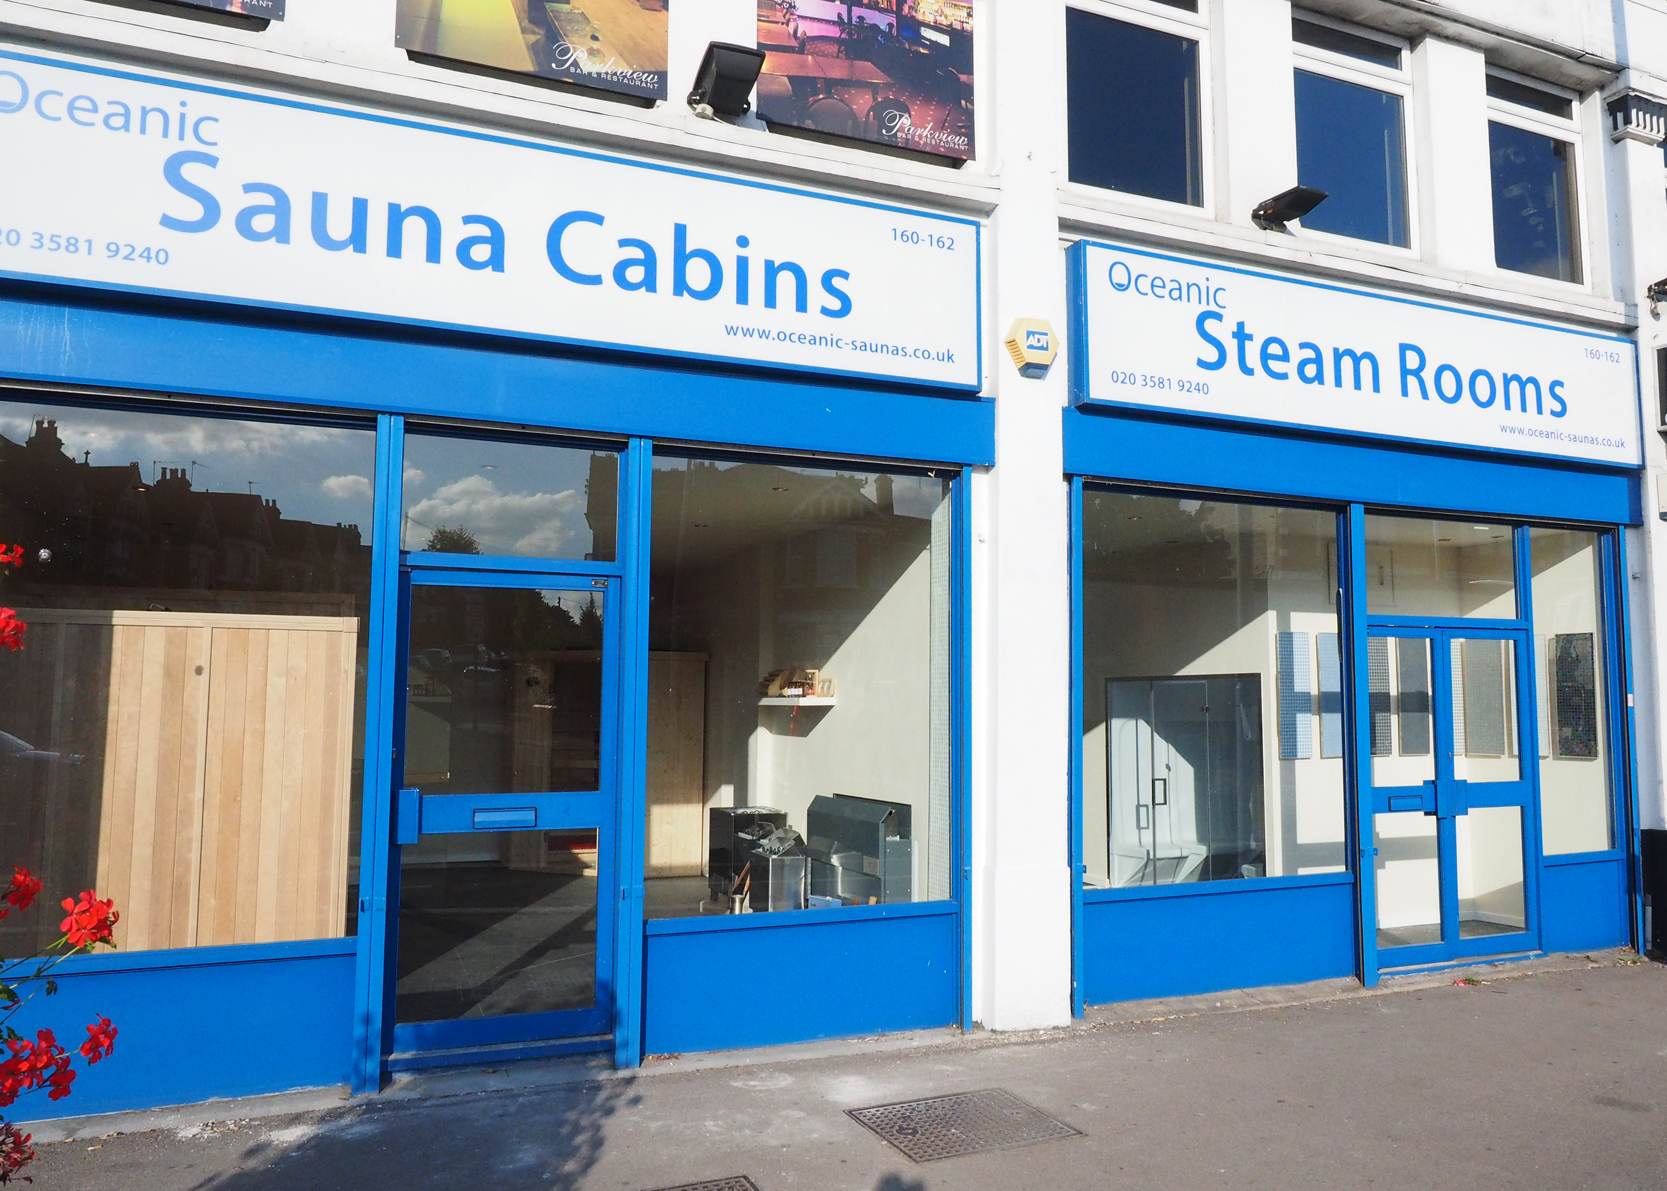 Oceanic Saunas London Showroom